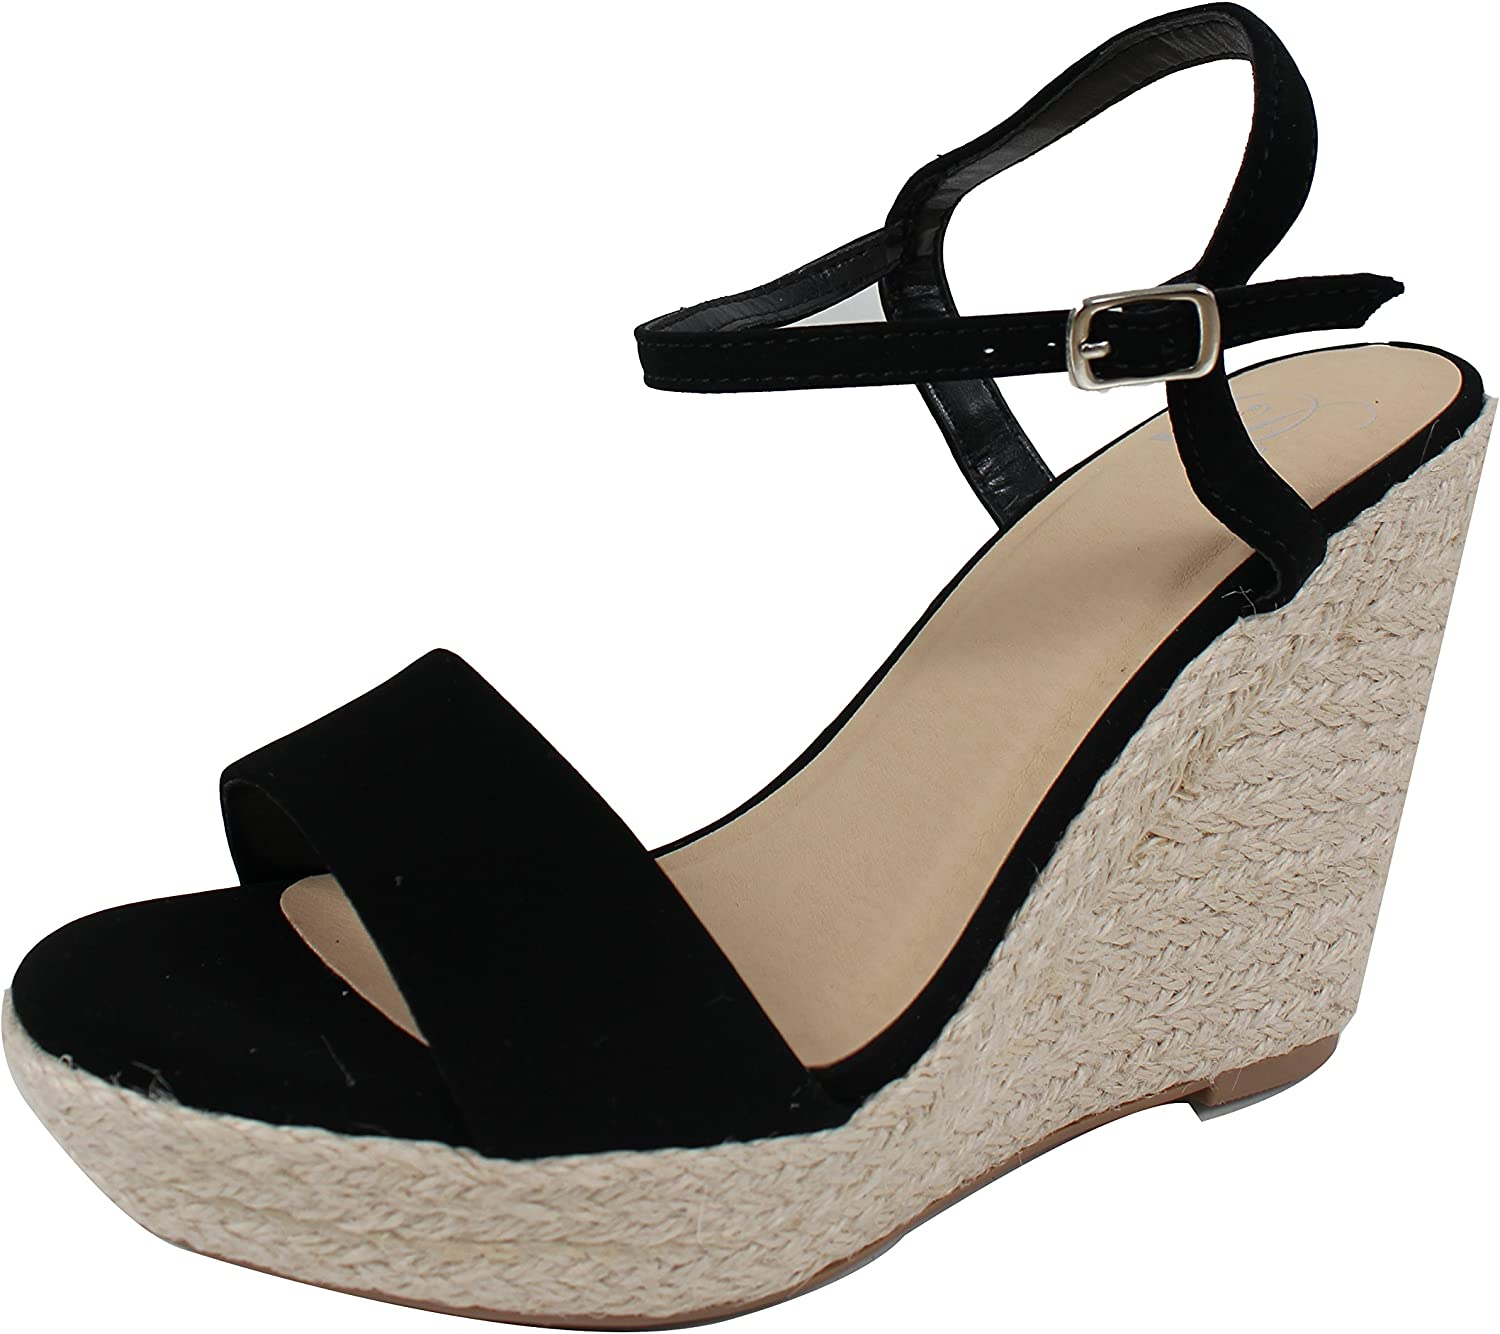 Delicious Women's Open Toe Ankle Strap Espadrille Wedge Sandal